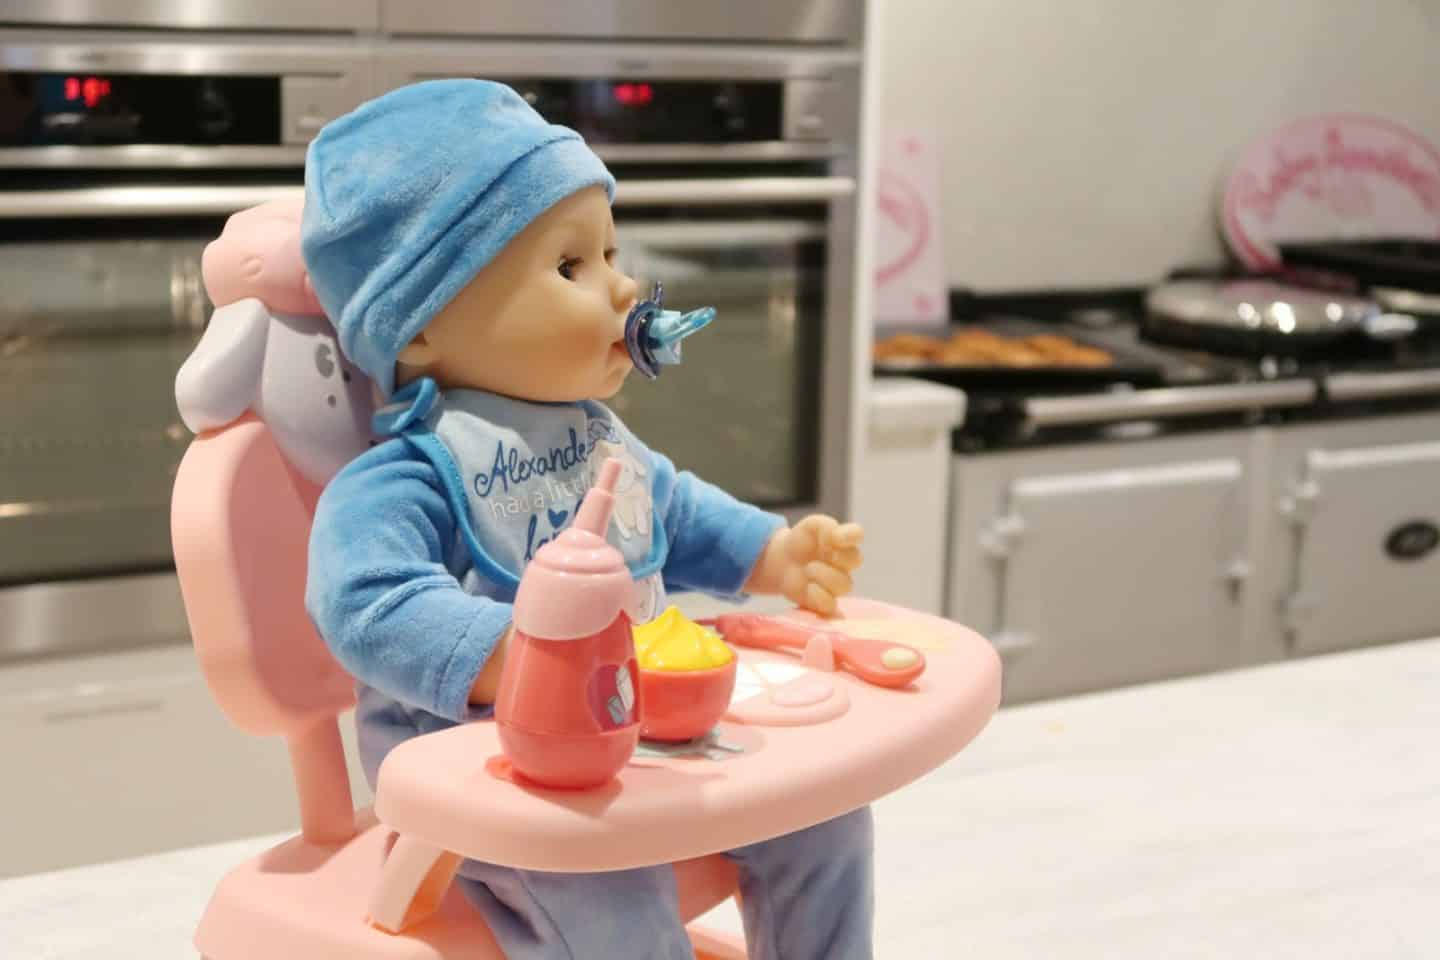 Lunchtime fun with the Baby Annabell Lunch time table ...